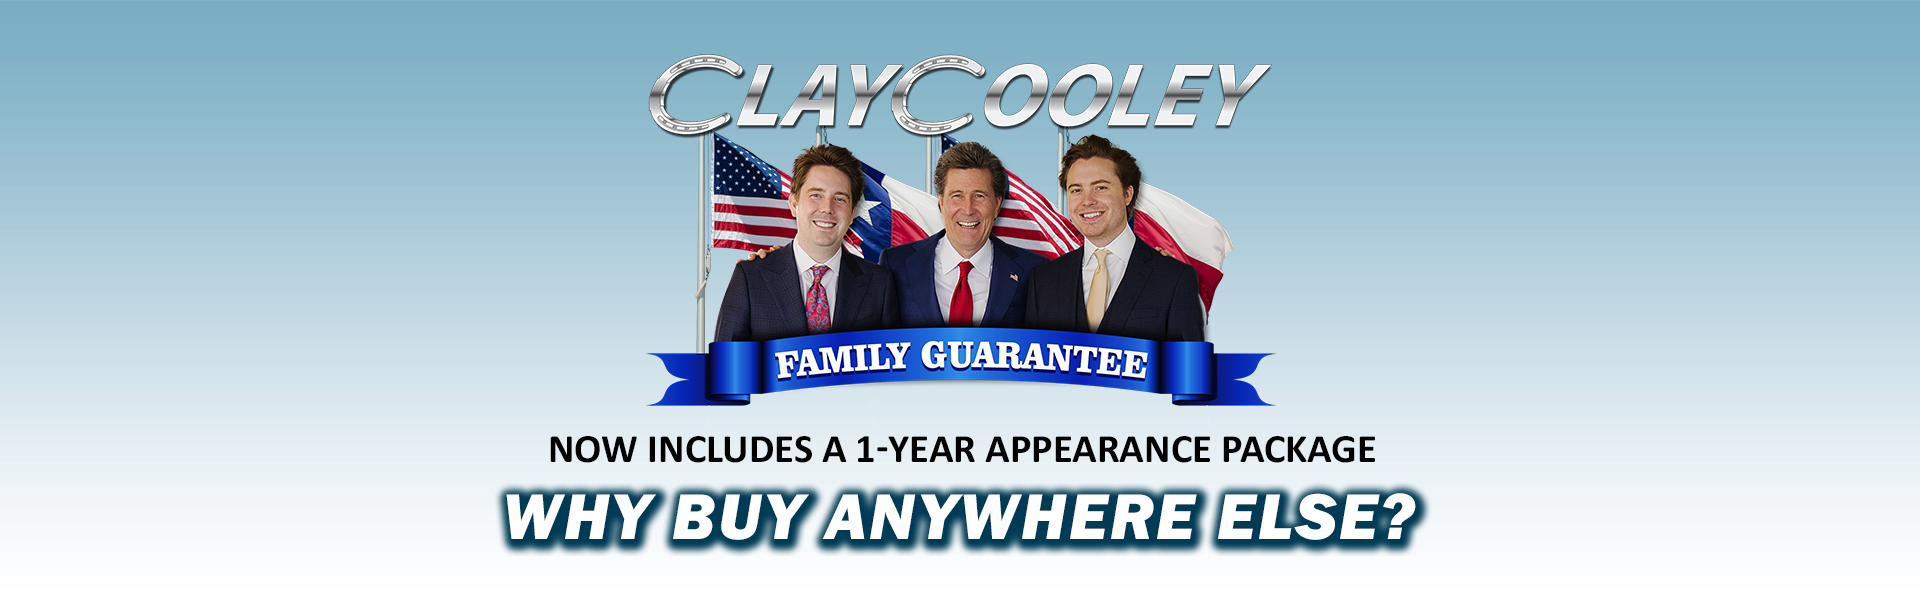 Clay Cooley Volkswagen of Rockwall